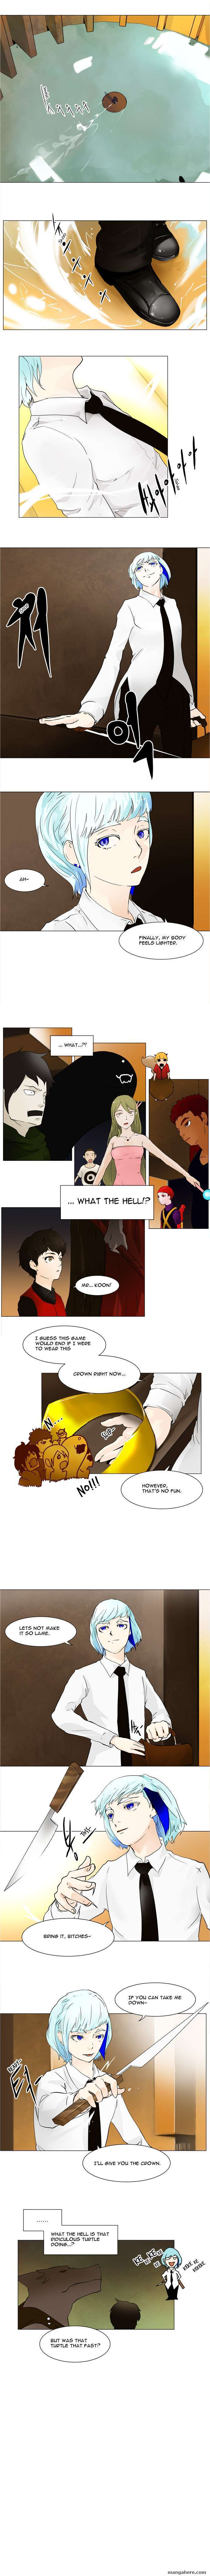 Tower of God 21 Page 2